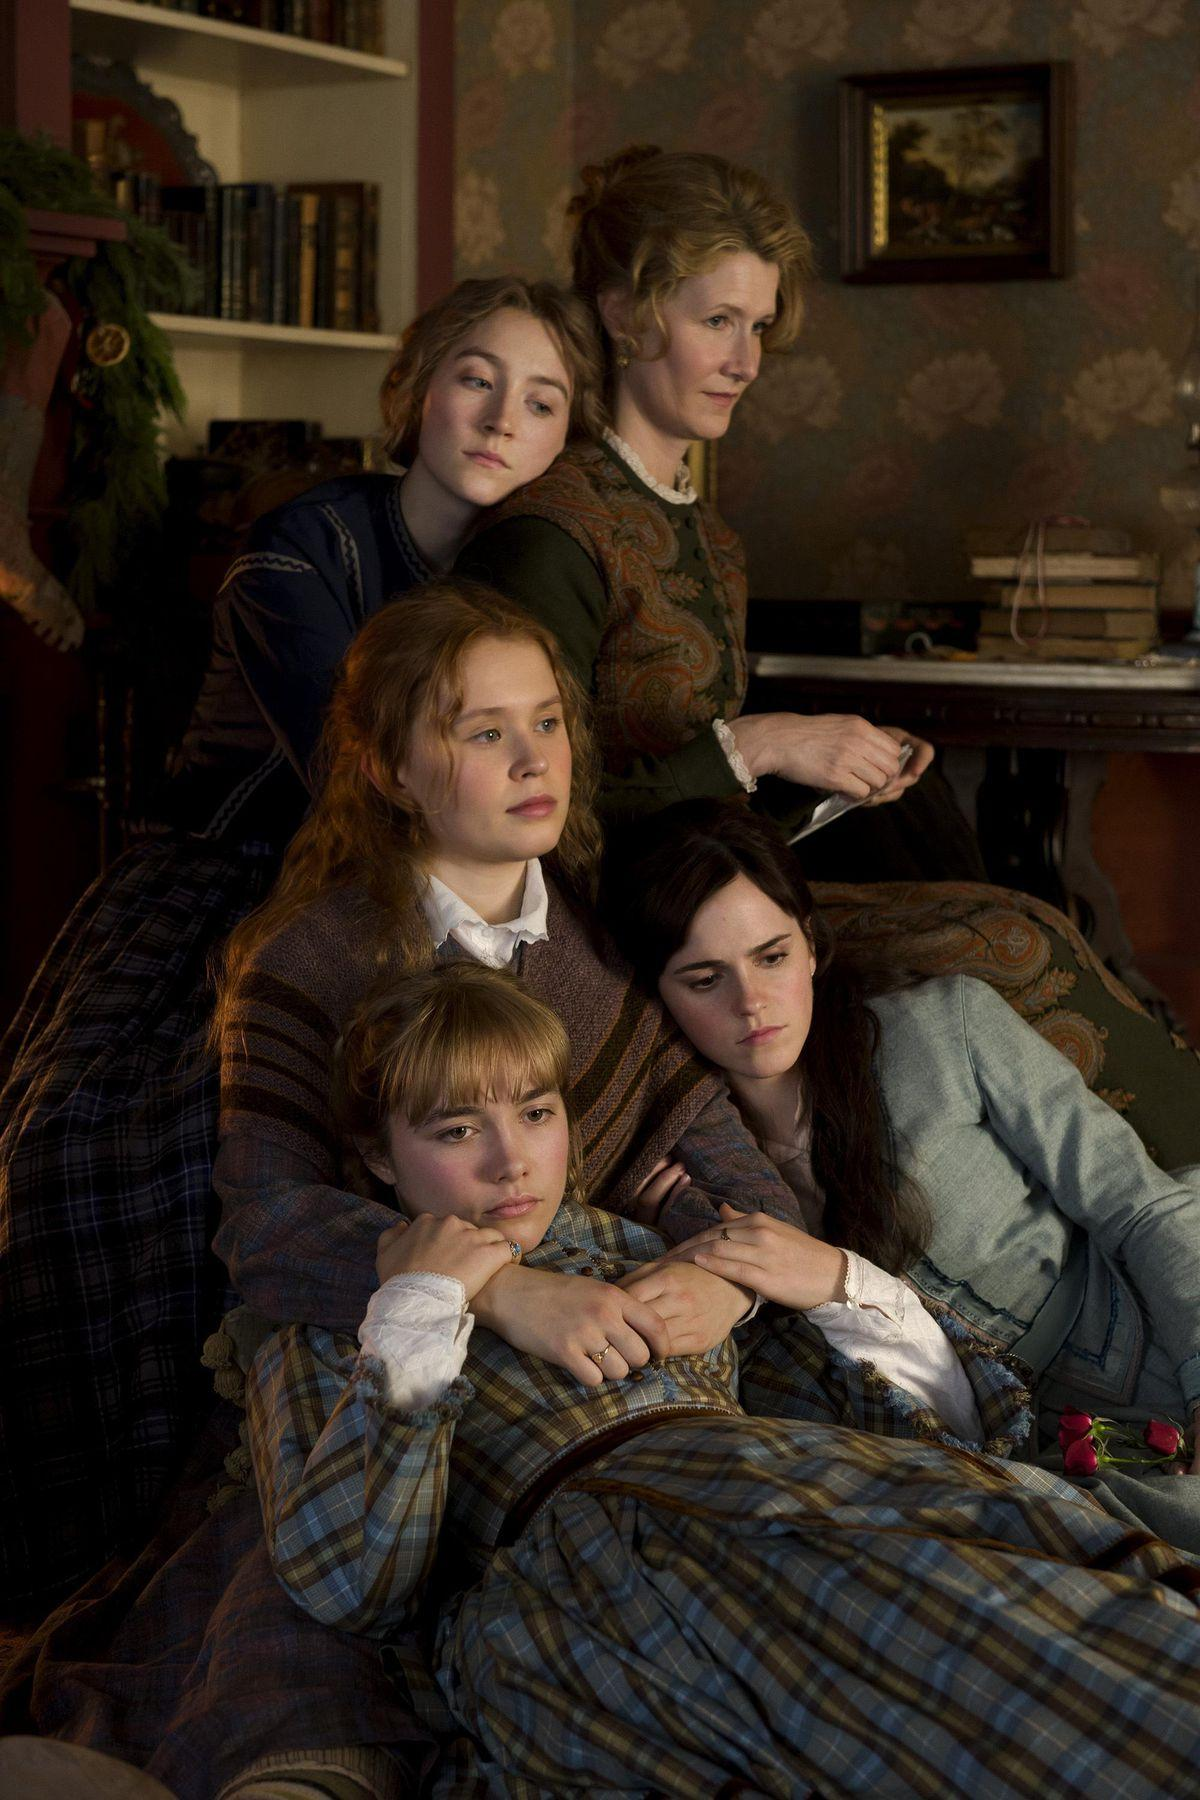 Little Women ending makes key change to Louisa May Alcott's